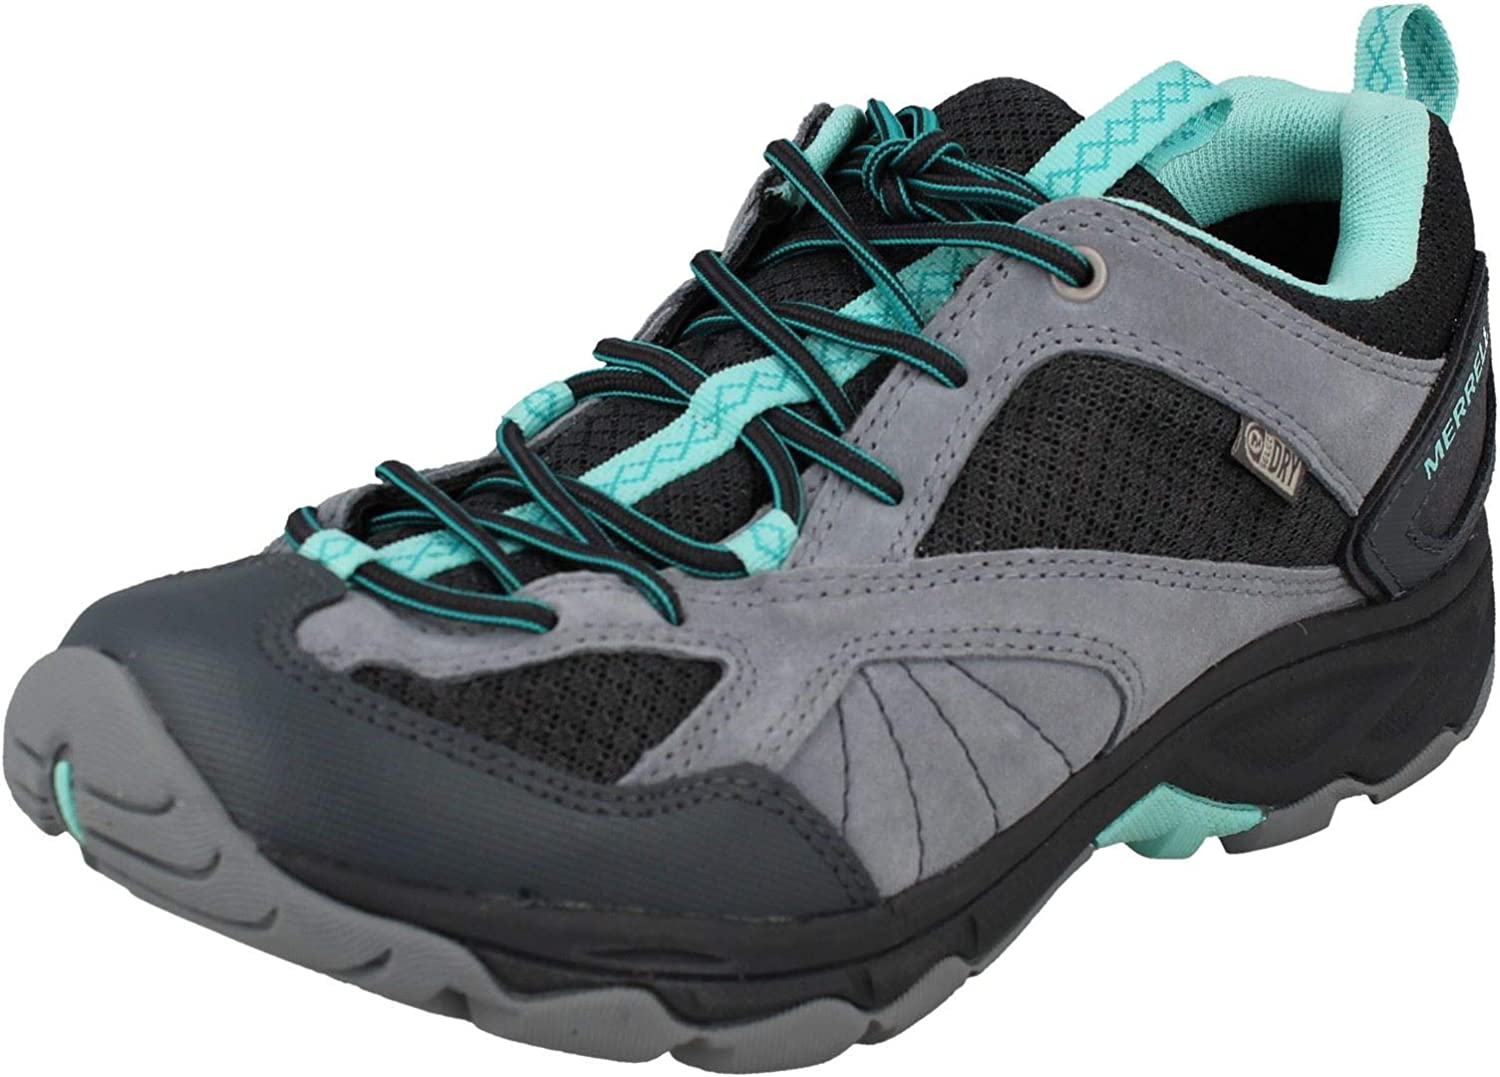 Merrell Avian Light 2 Ventilator WP Womens Sneakers Sport Walking shoes